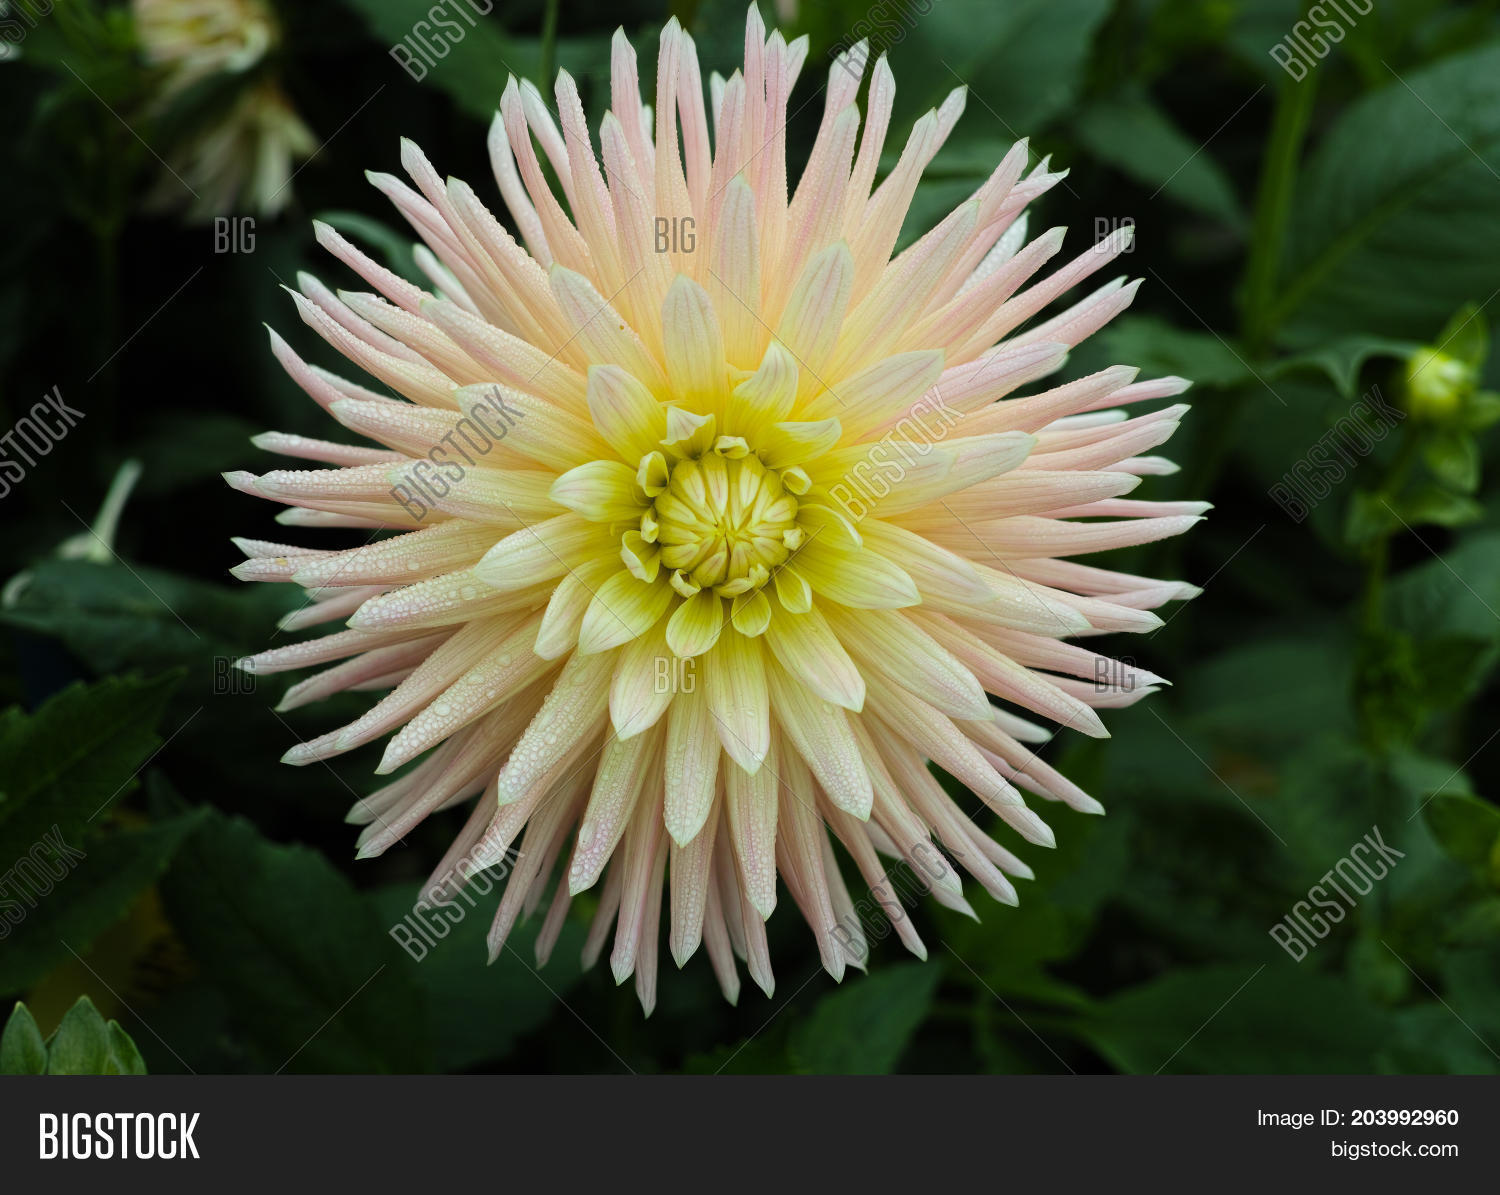 White dahlia flower image photo free trial bigstock white dahlia flower beautiful bouquet or decoration from the garden izmirmasajfo